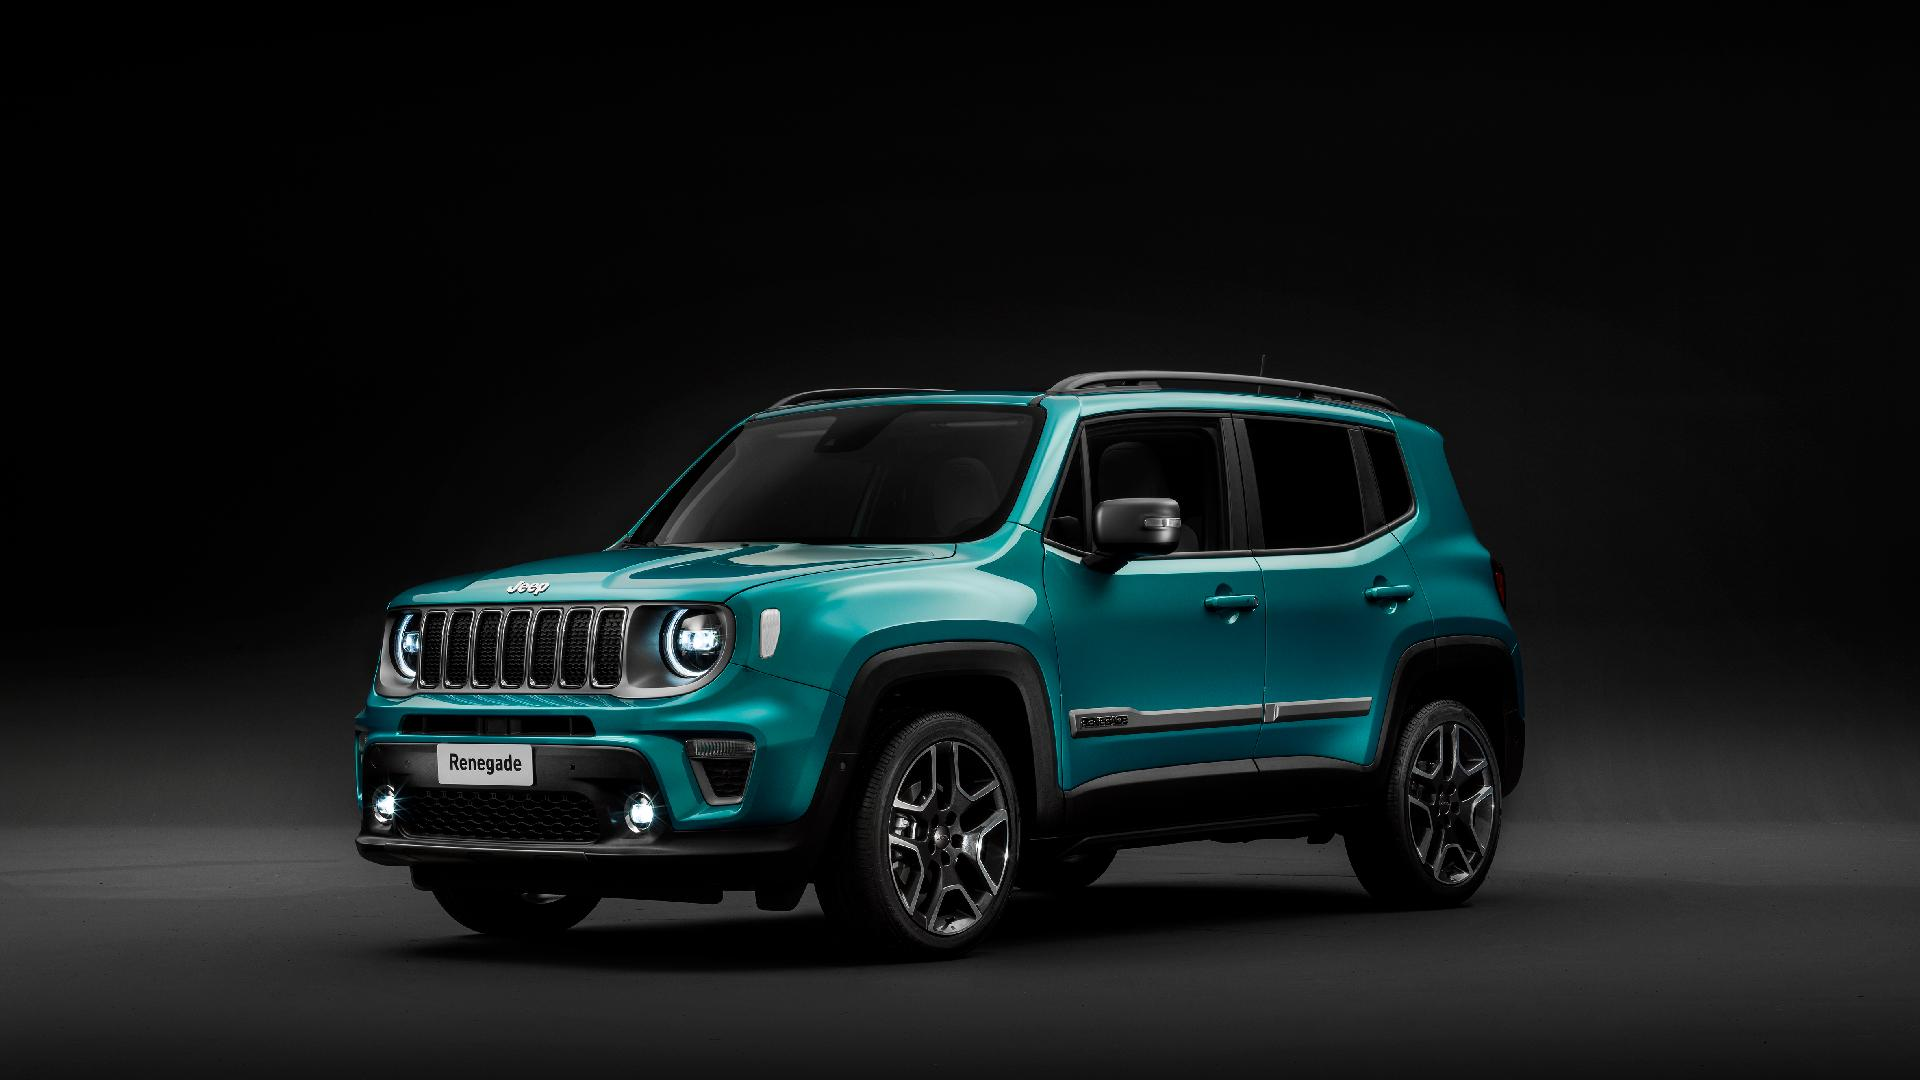 JEEP Renegade 1.6 MultiJet Limited FWD S&S